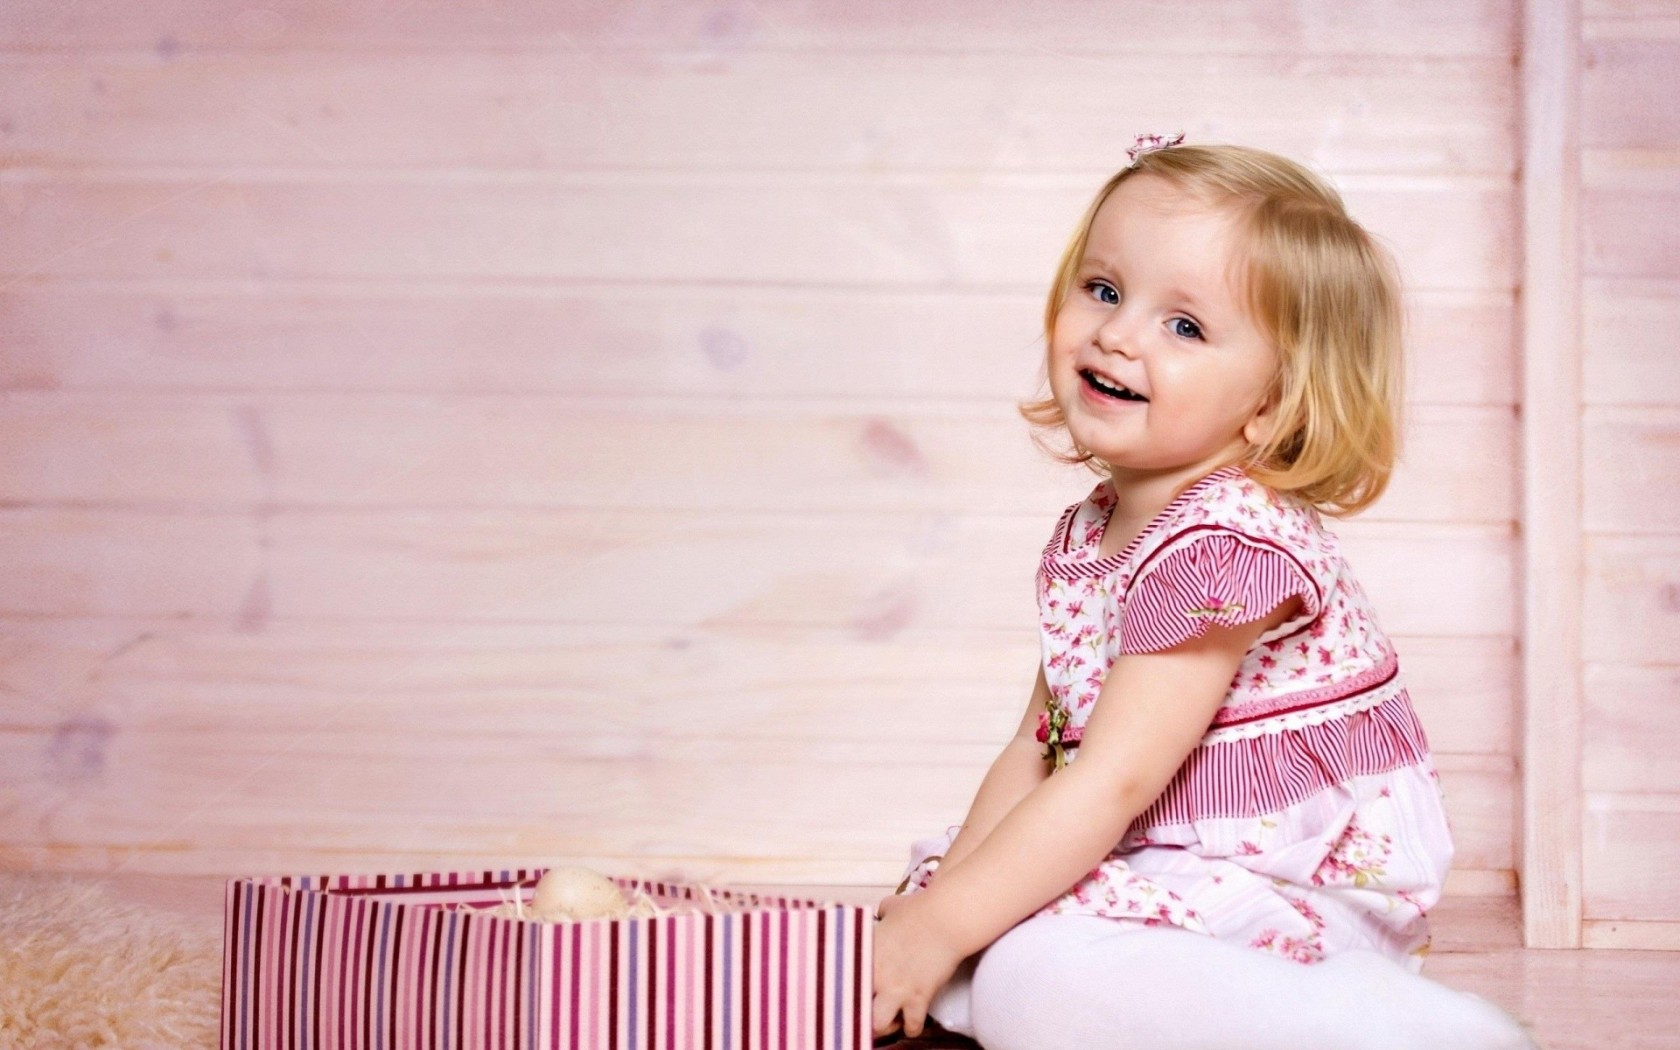 Cute Wallpapers For Girls 67 Images: Cute Wallpapers For Teens